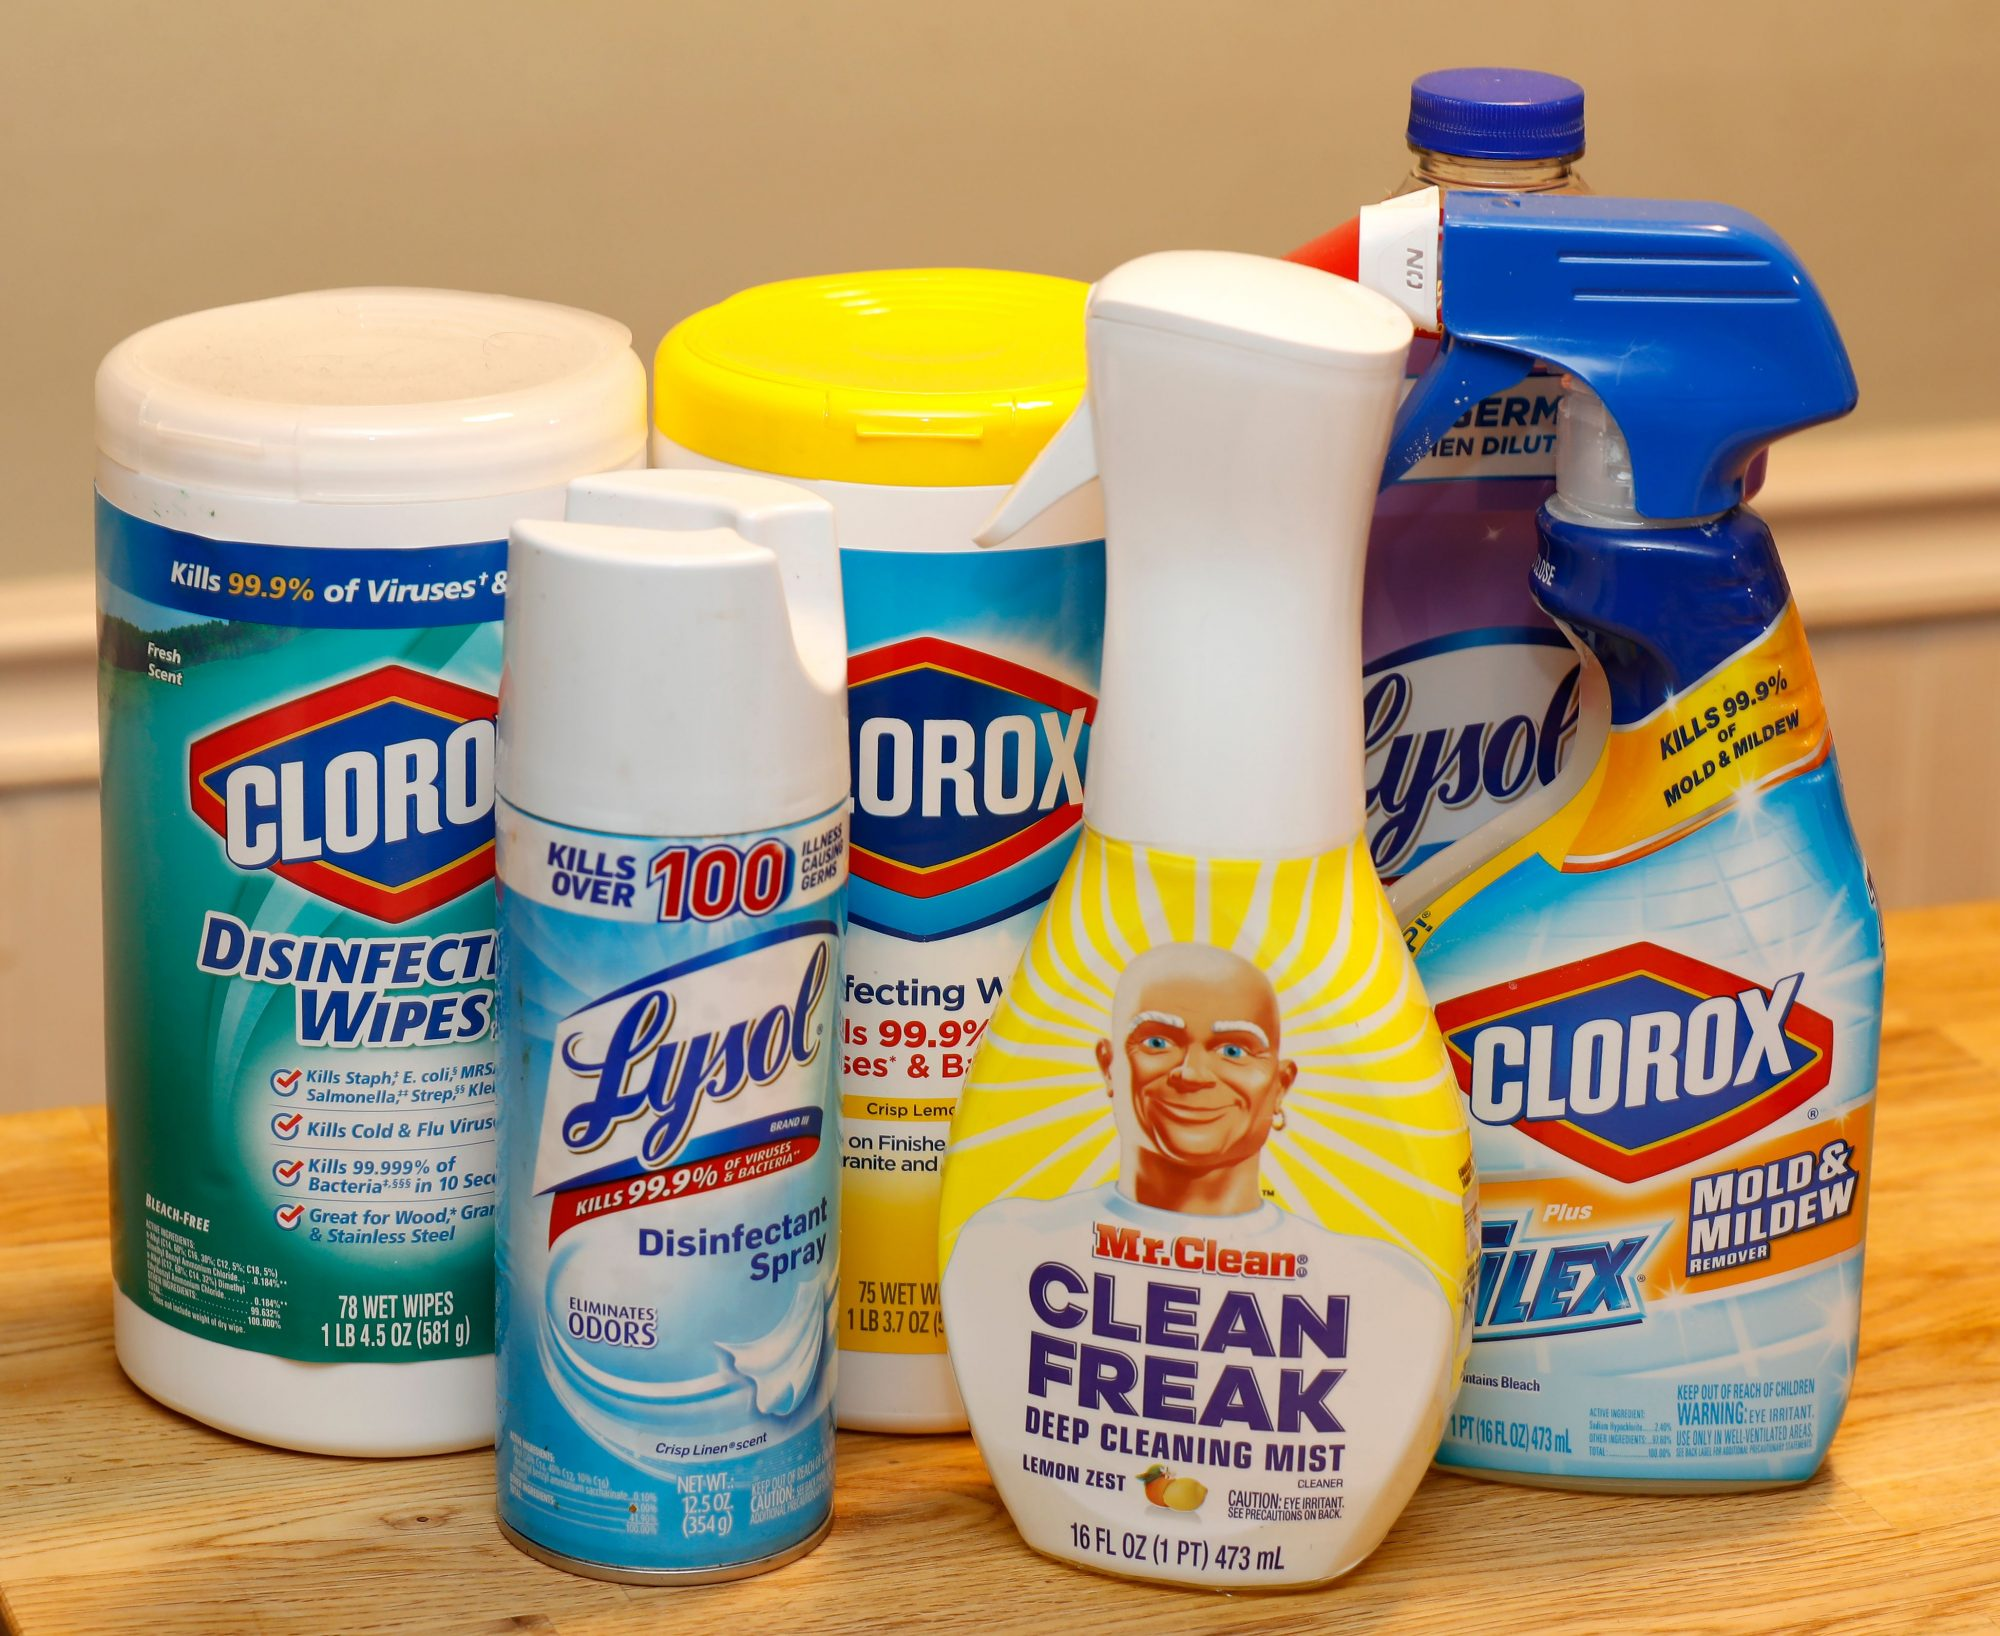 Disinfecting cleaners from Lysol, Clorox and Mr. Clean